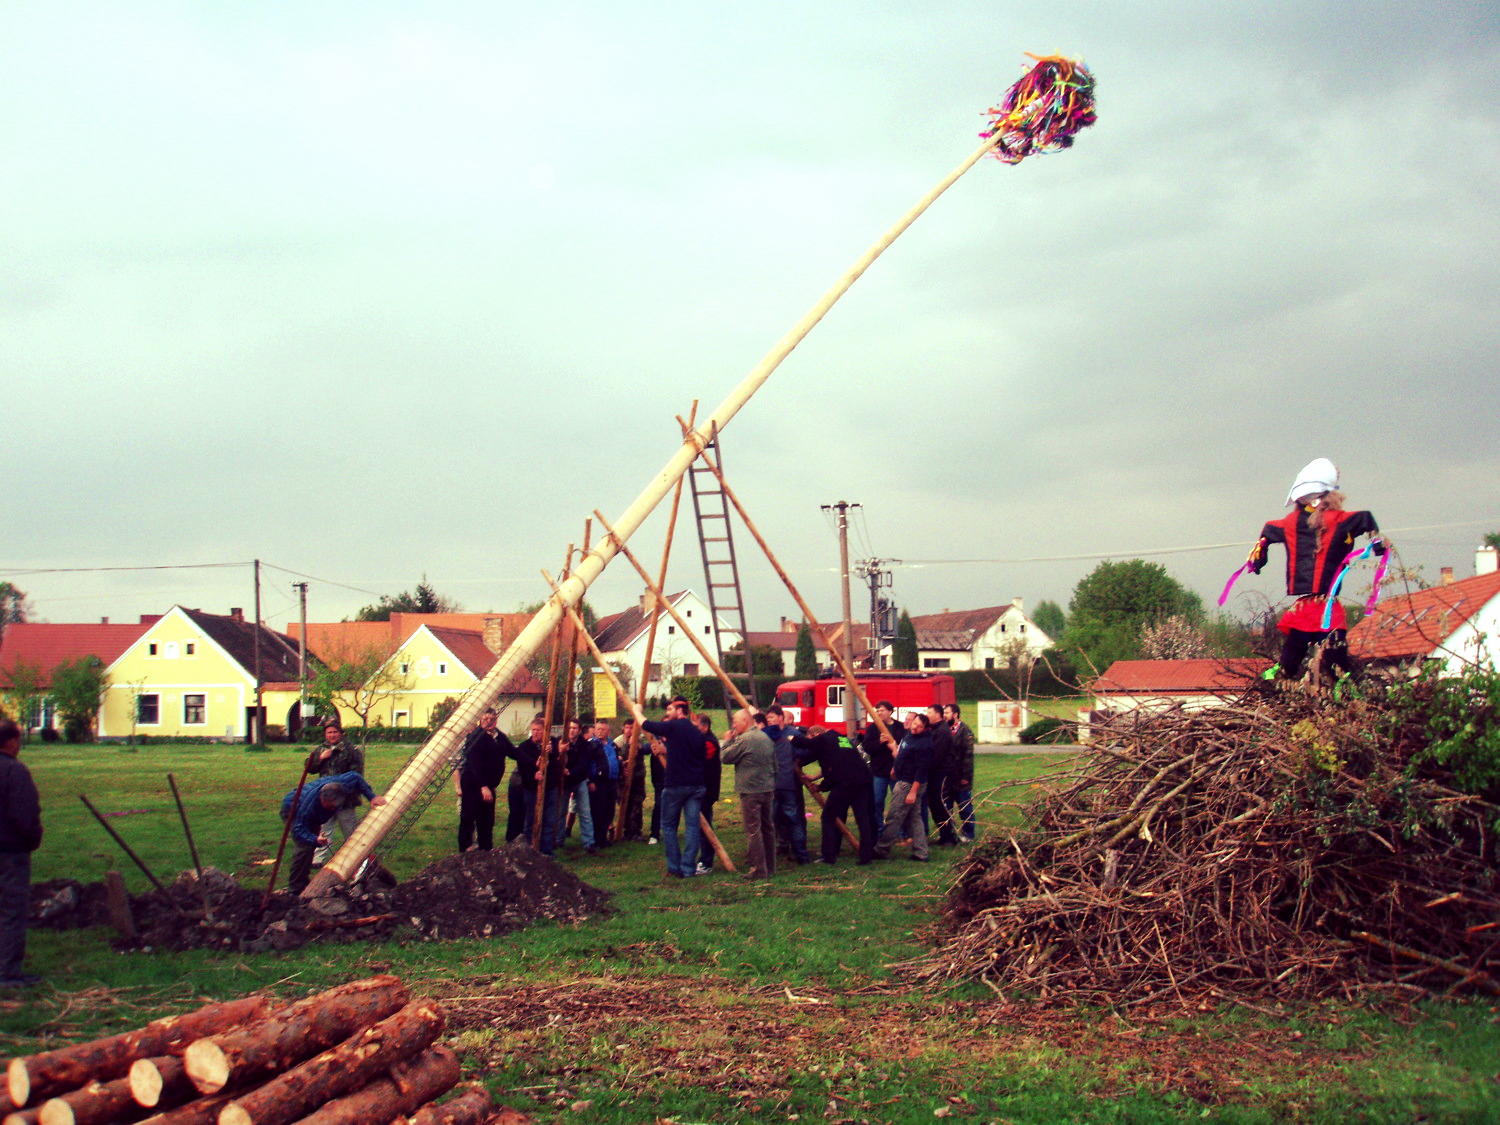 The men of Stribrec village raise the maypole next to the witch fire.